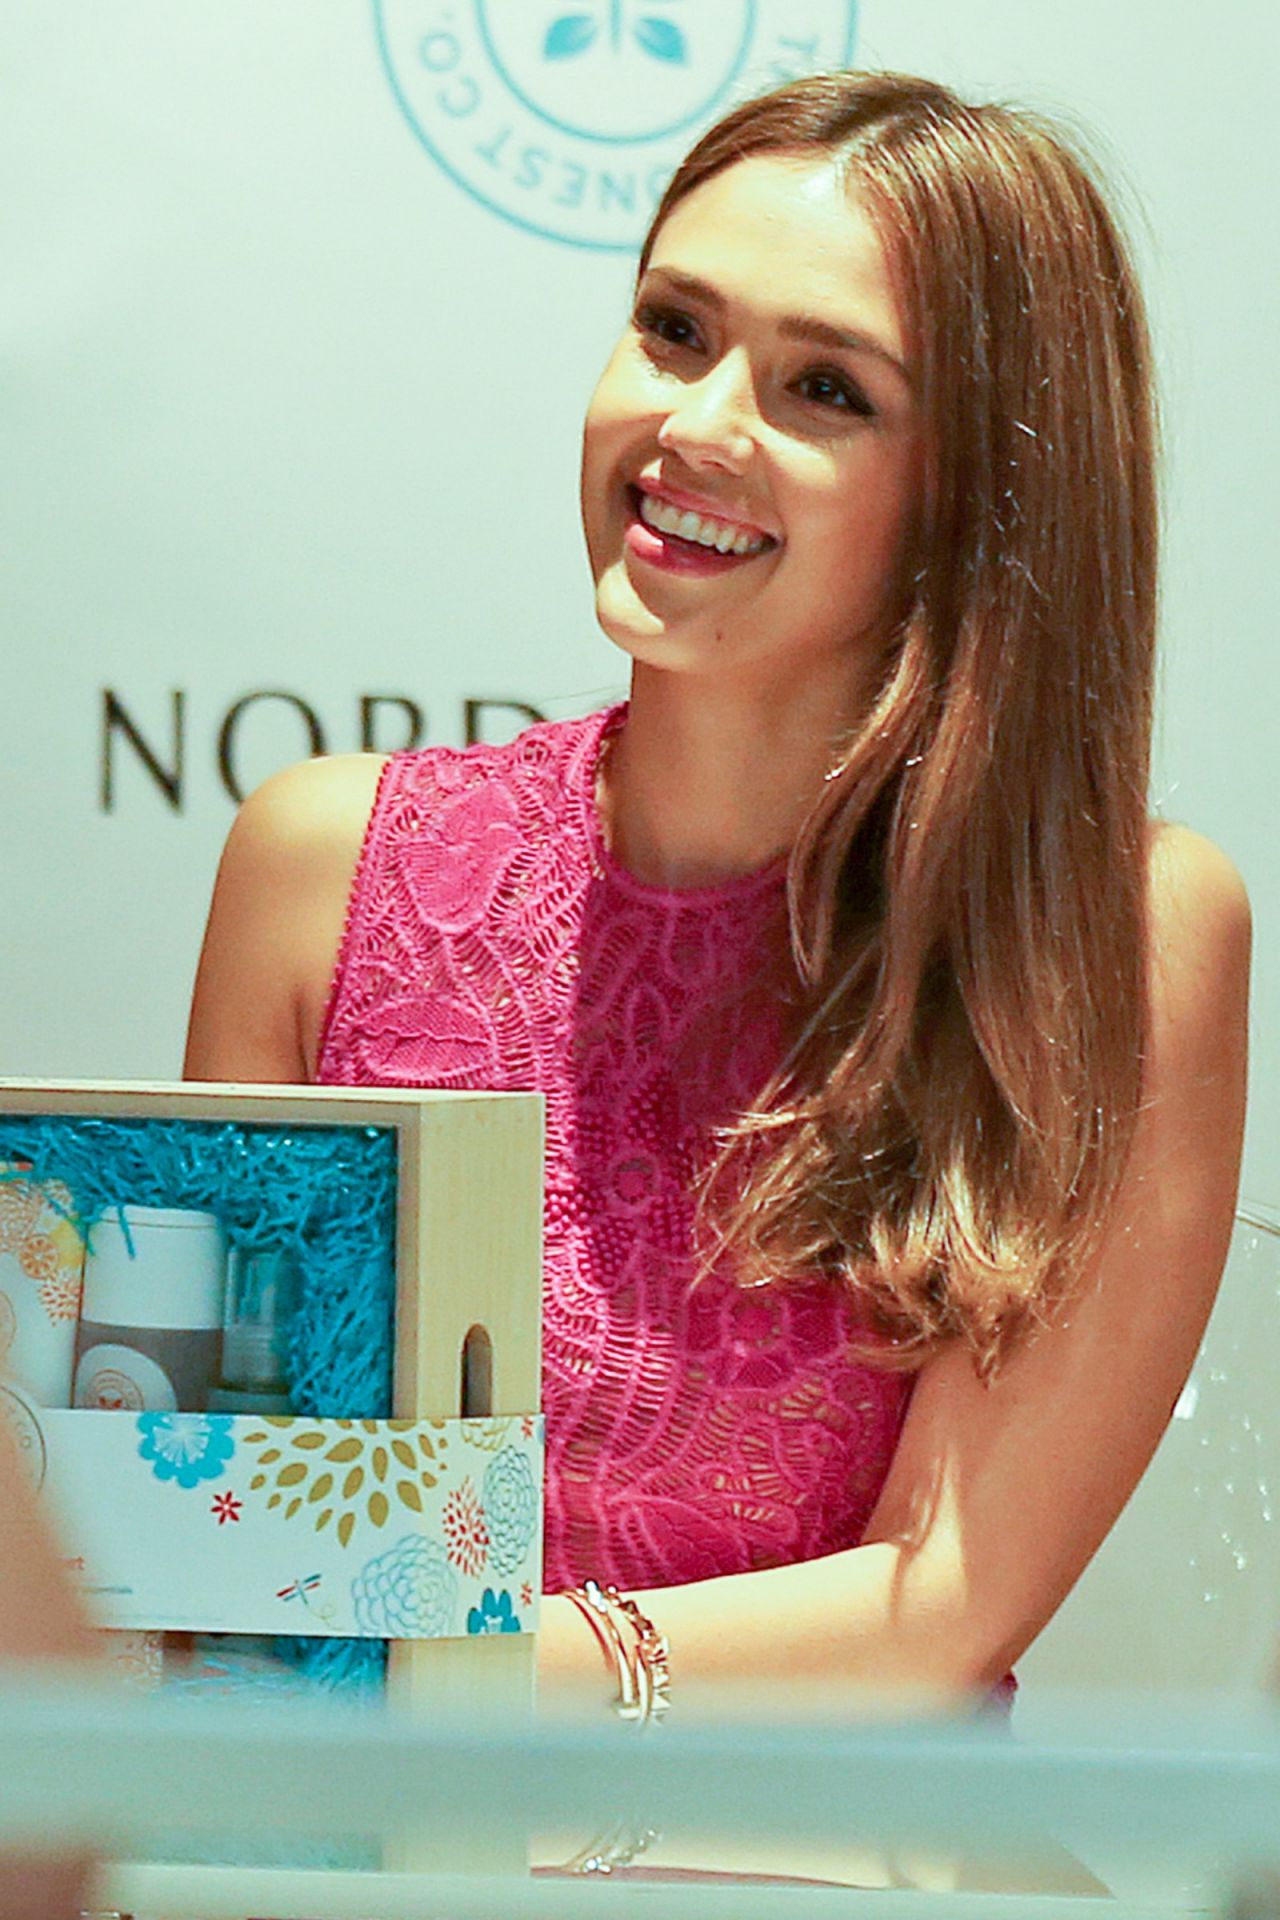 Jessica Alba Meet And Greet Hosted By The Honest Company In